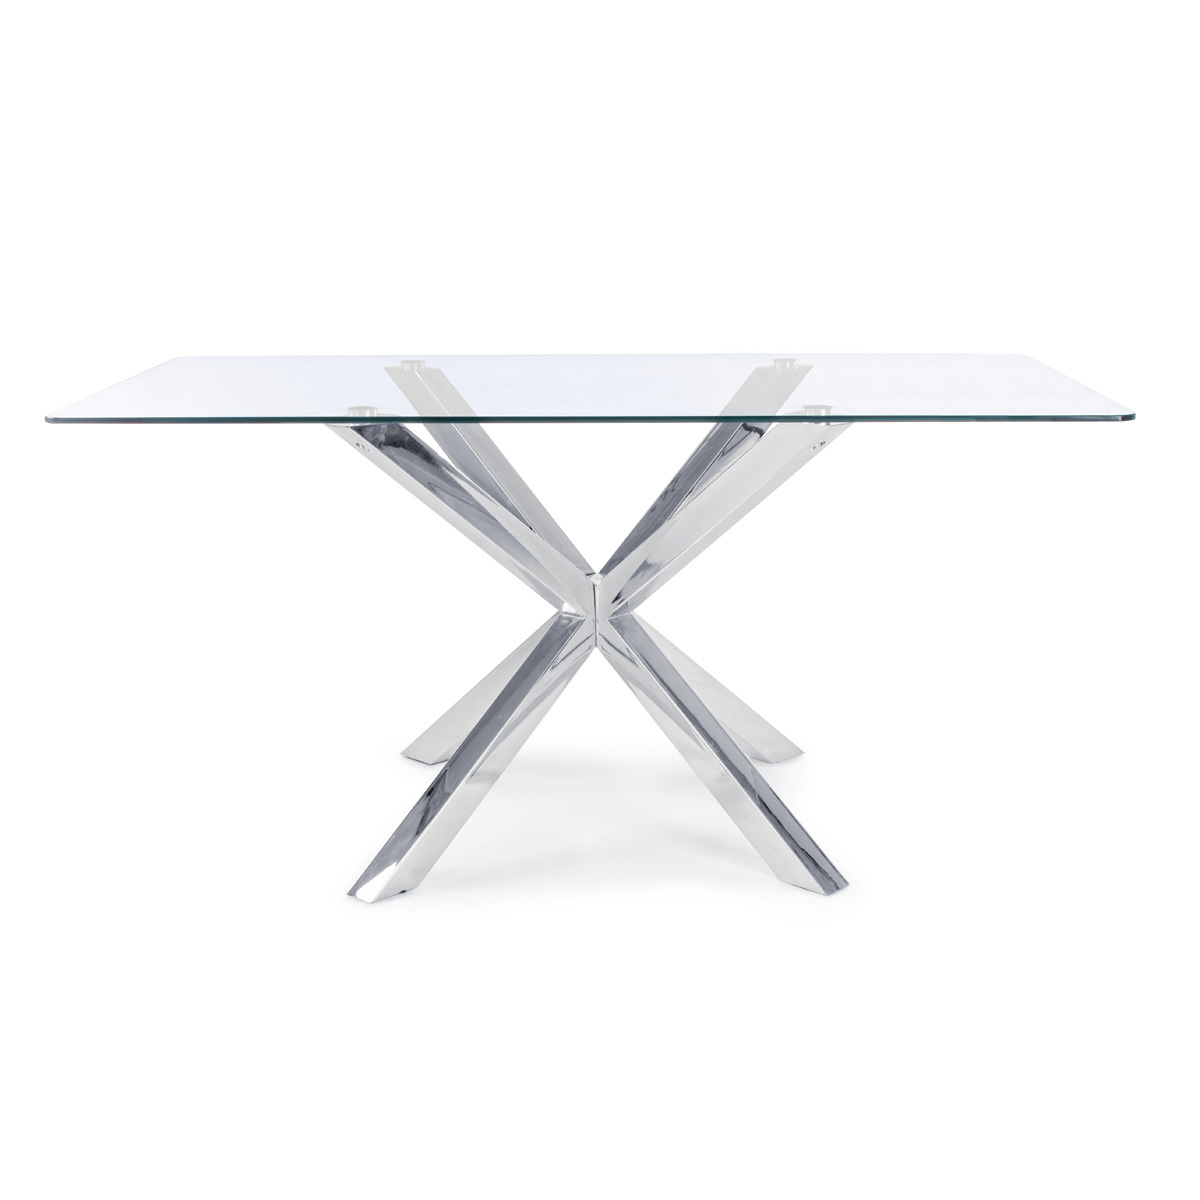 Photos 2: Bizzotto Fixed rectangular table l. 160 x 90 0732189